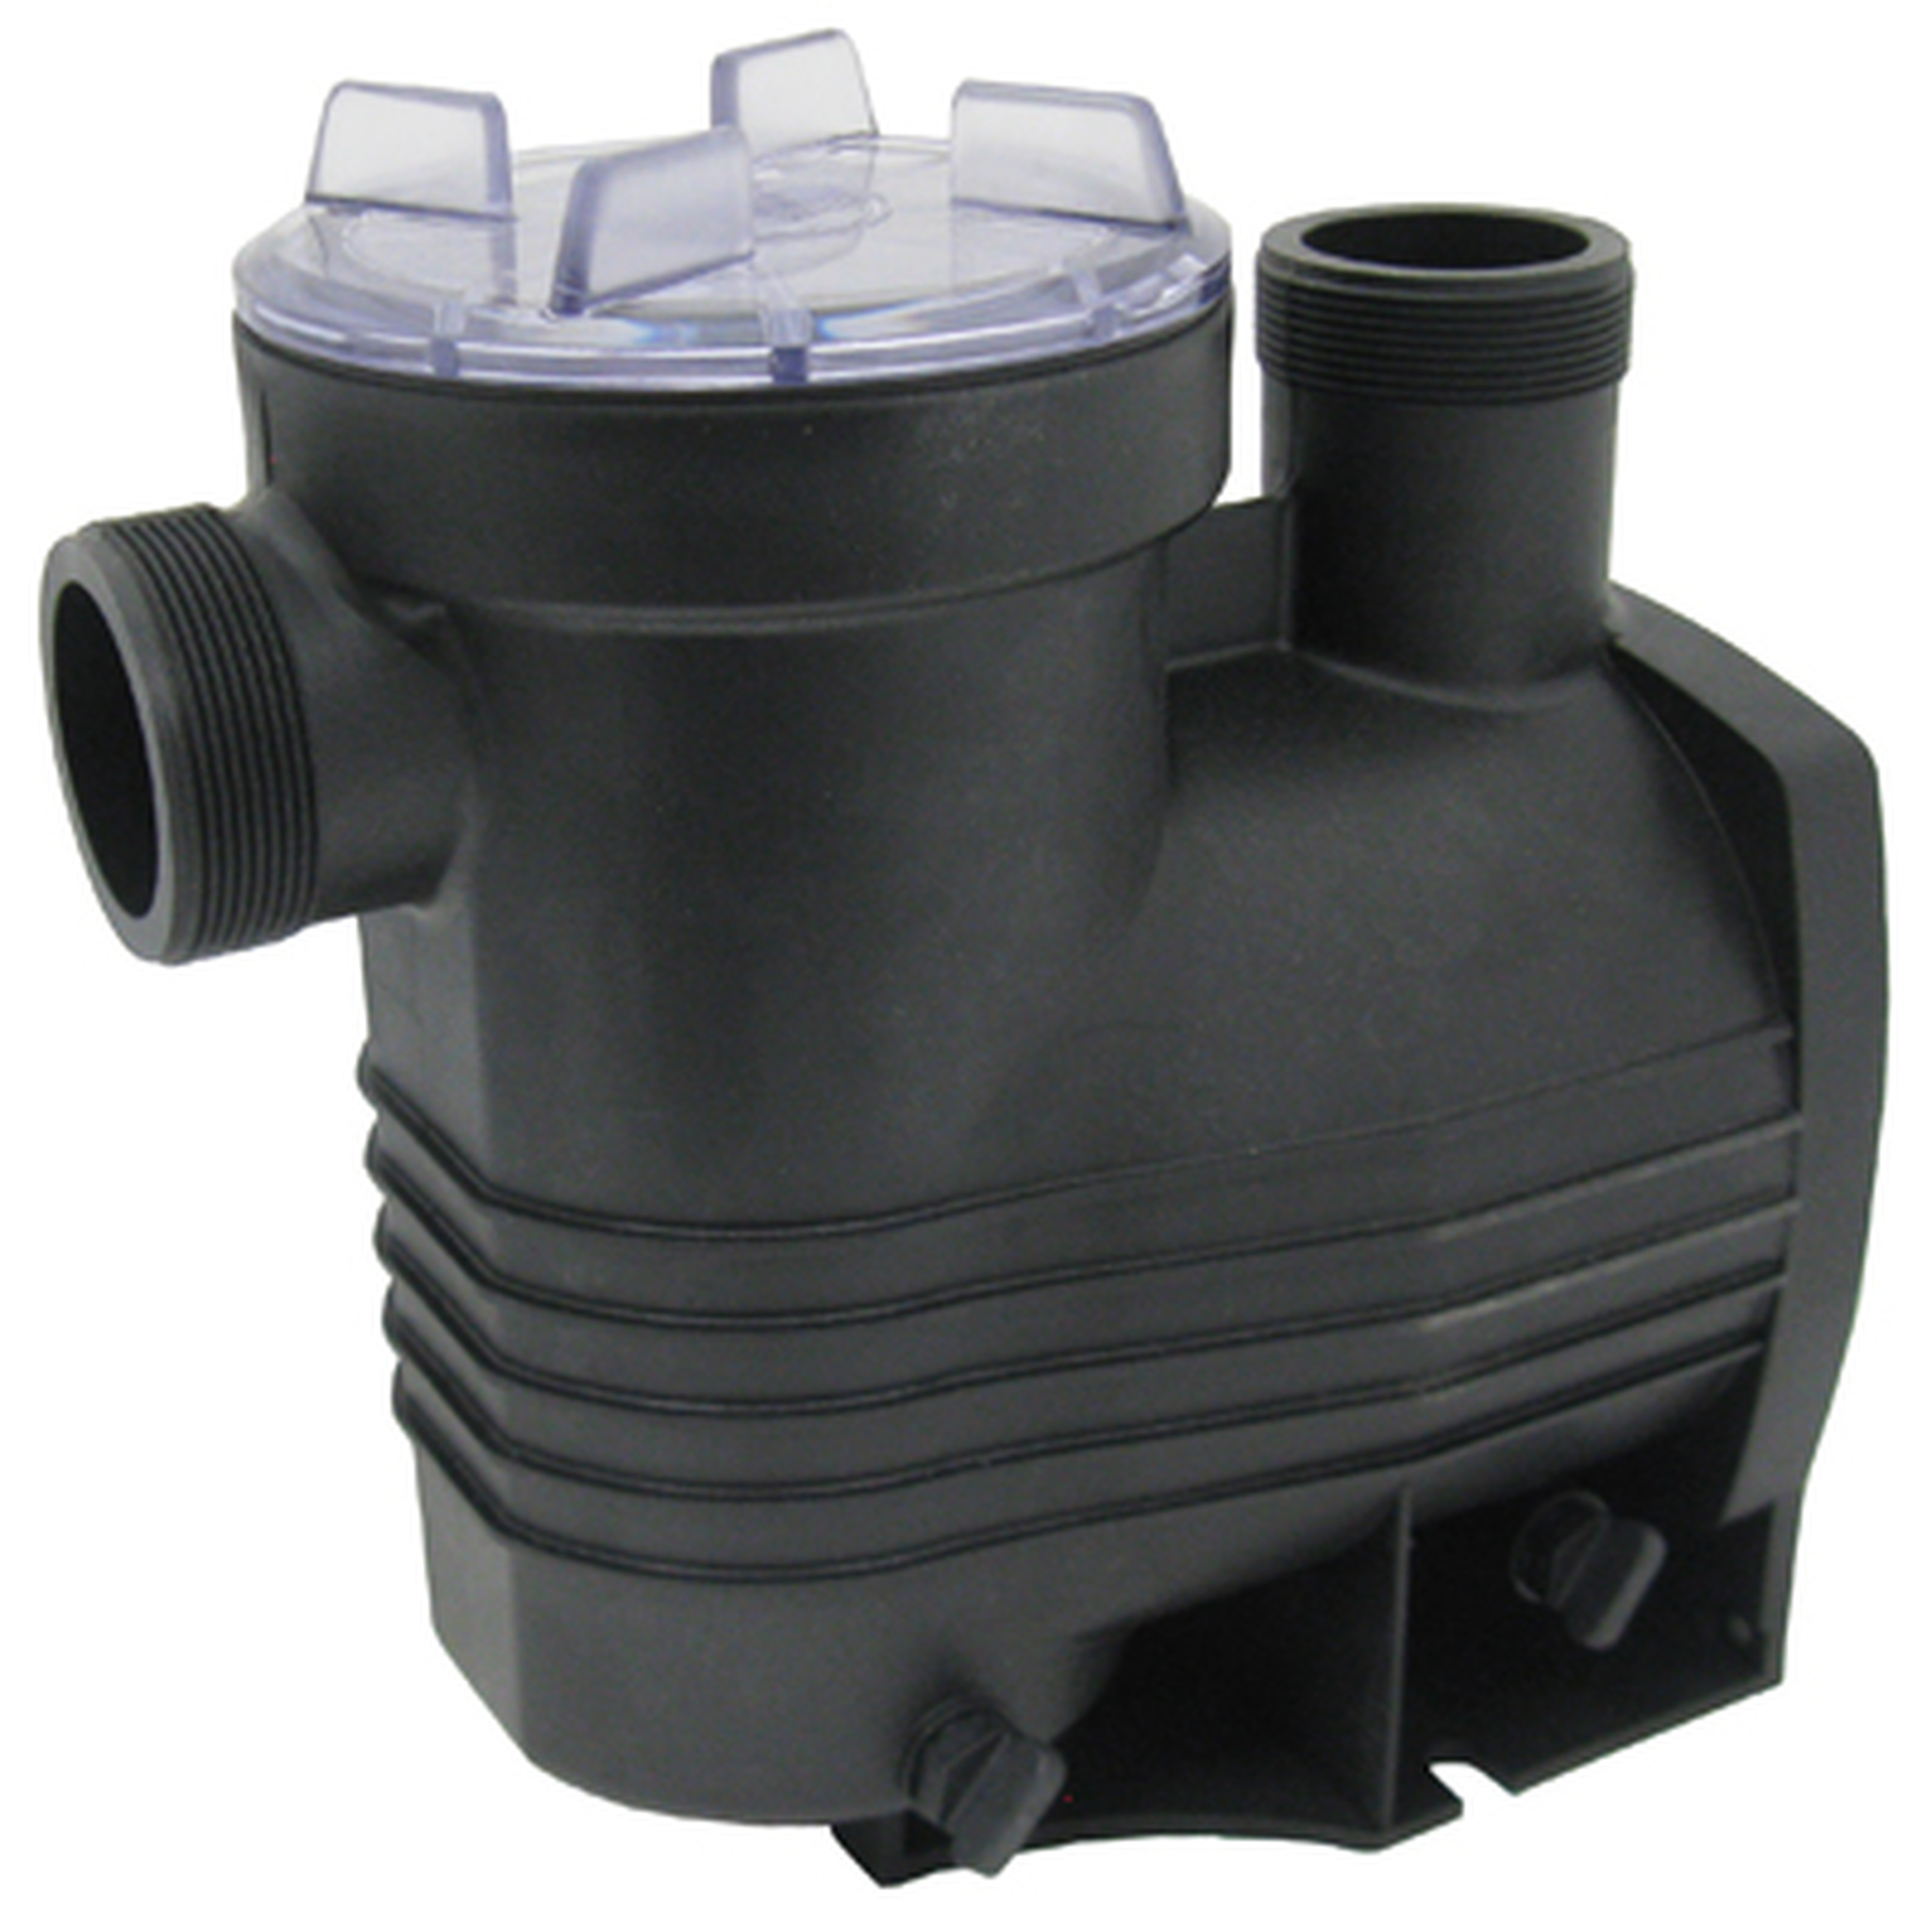 WATERCO HYDROSTAR SELF-PRIMING